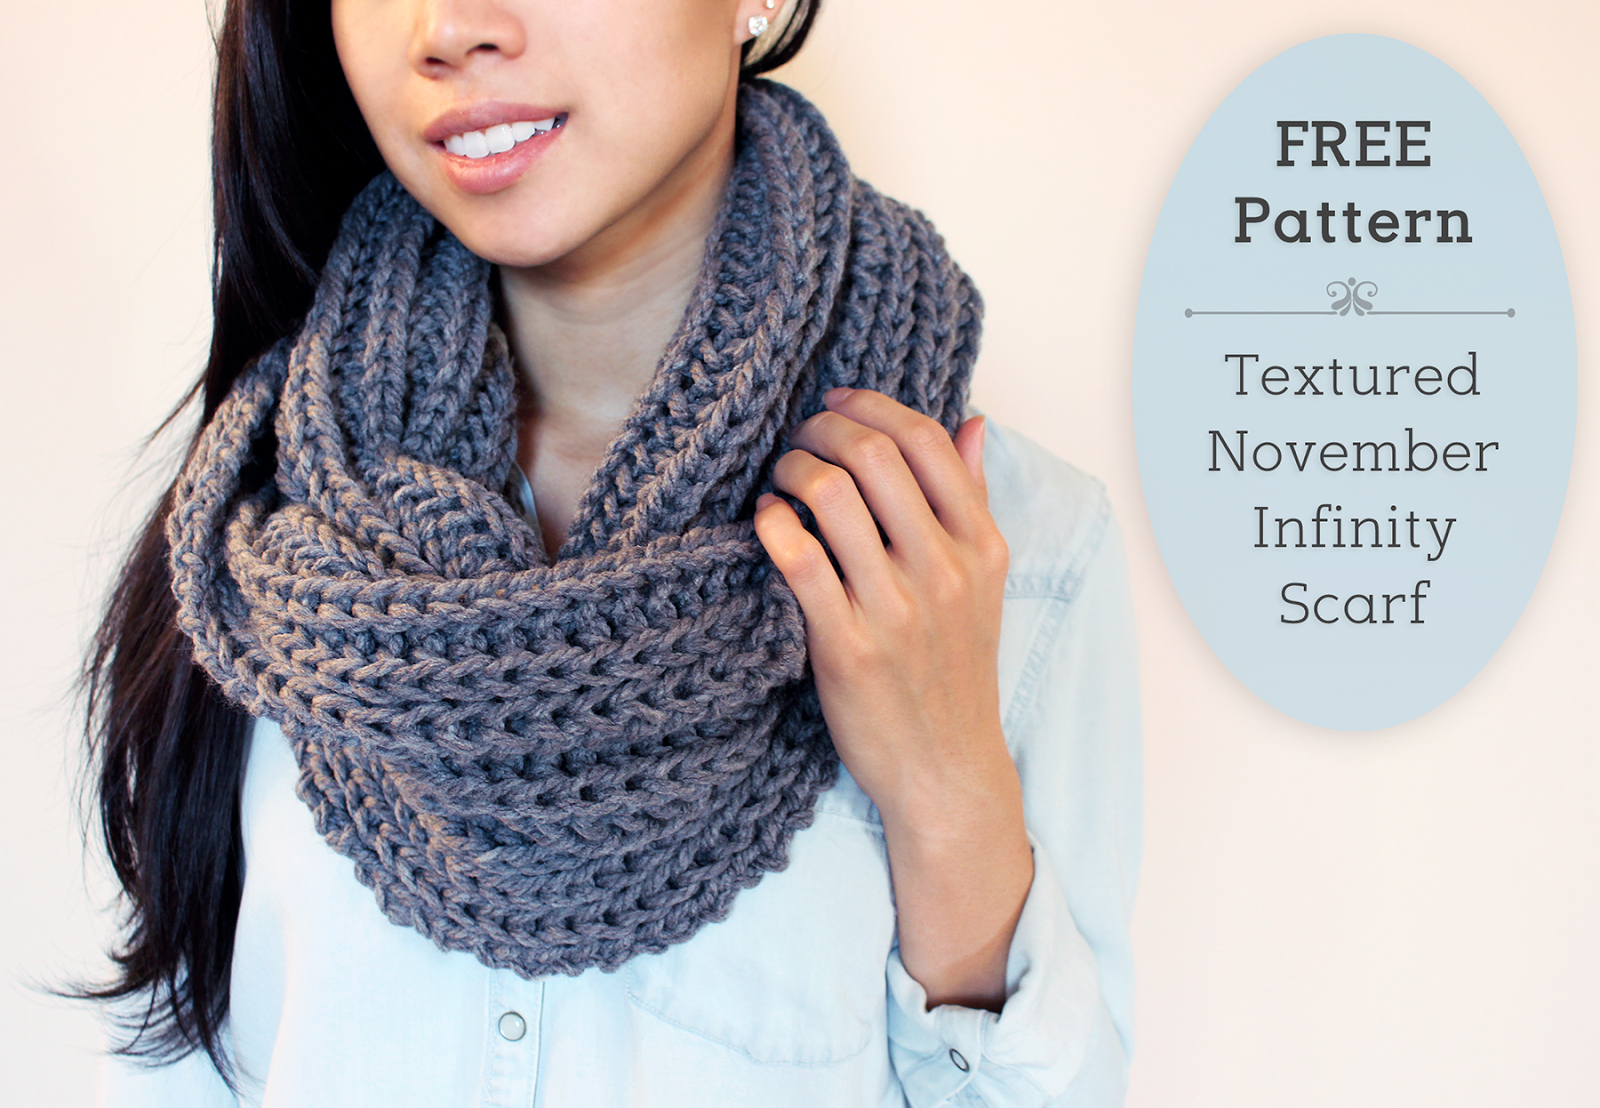 Knitting Scarf Pattern For Beginners Free Chunky Scarf Knitting Patterns For Beginners Crochet And Free